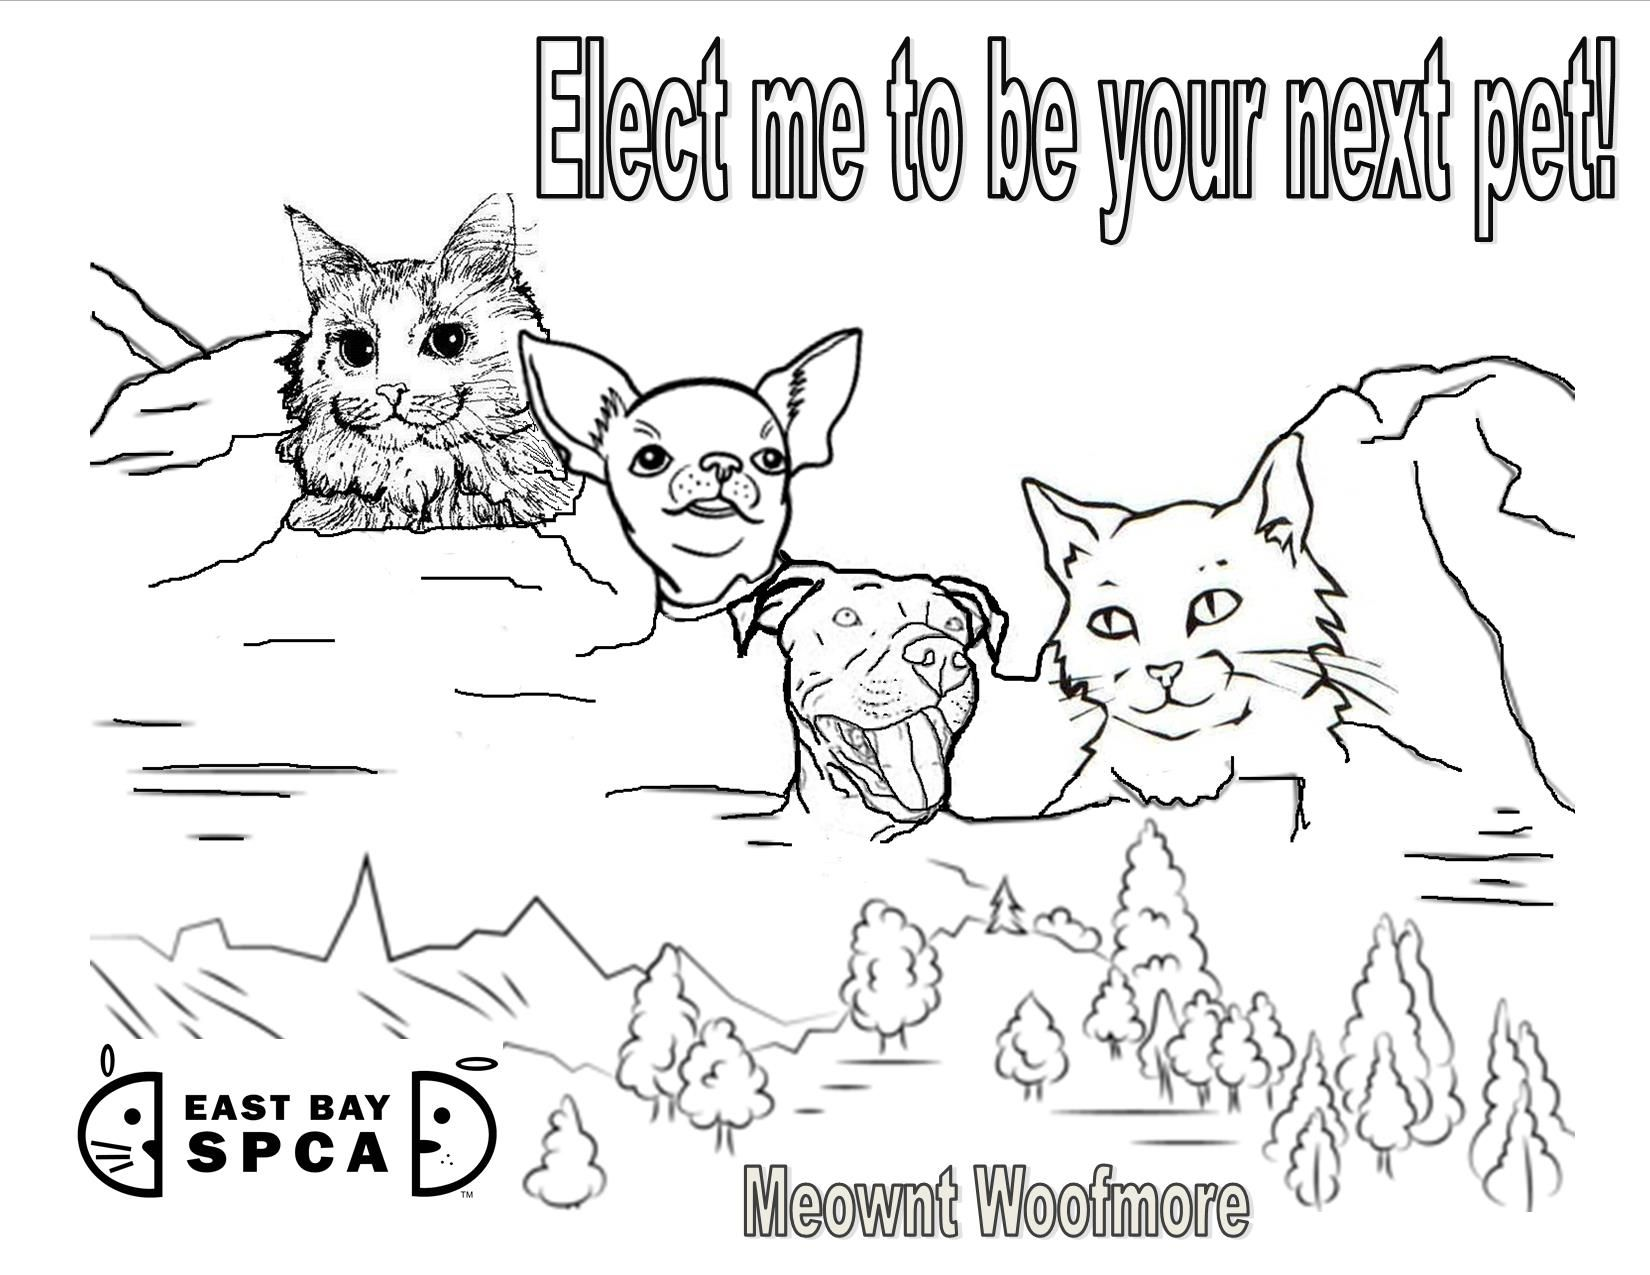 President S Day Shelter Pet Coloring Sheet From The East Bay Spca Humane Education Spca Pets